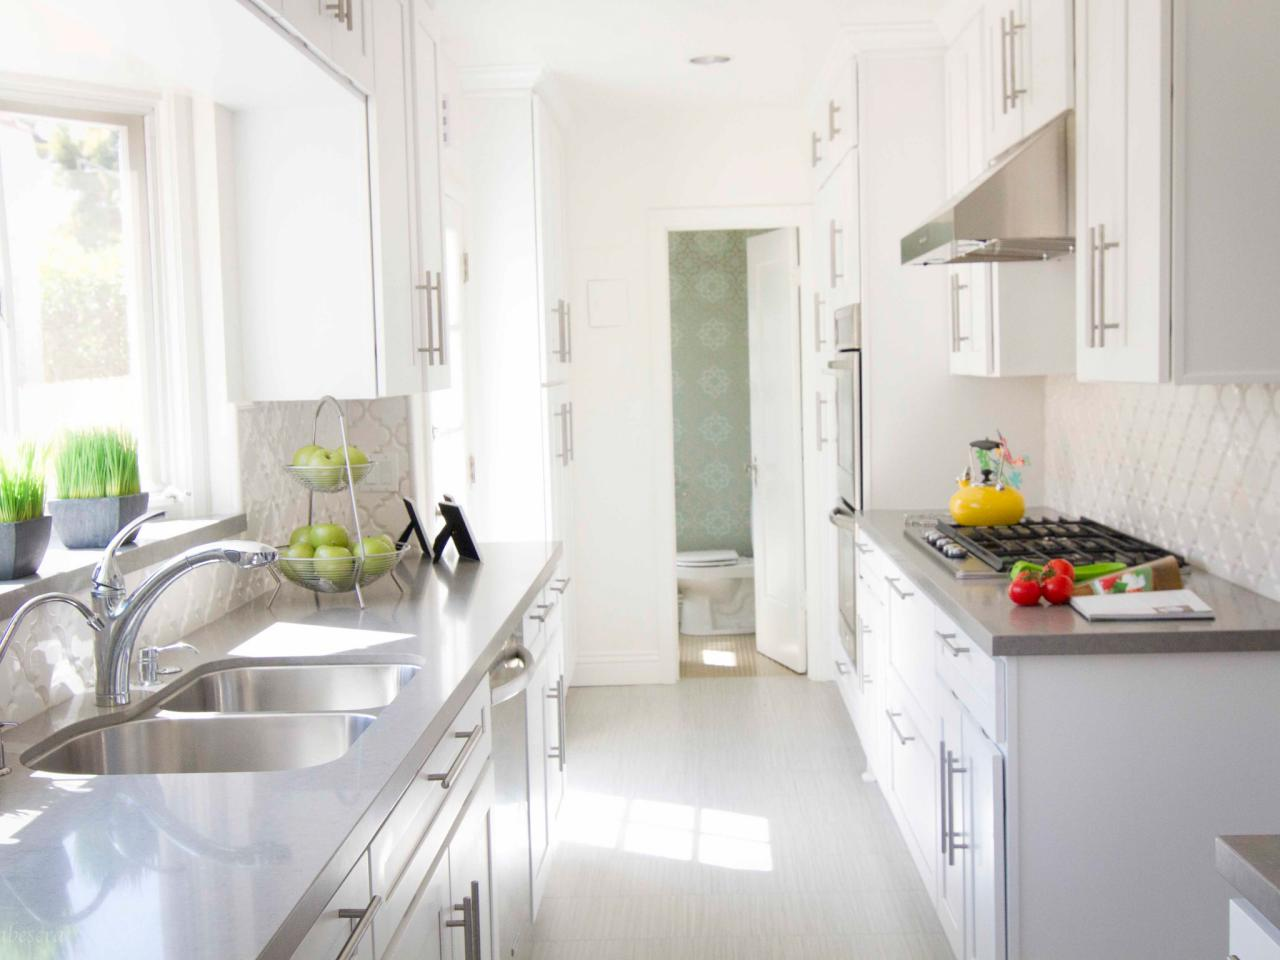 Best Kitchen Gallery: 15 Stunning Quartz Countertop Colors To Gather Inspiration From of Kitchen Cabinets With White Quartz Countertop on rachelxblog.com